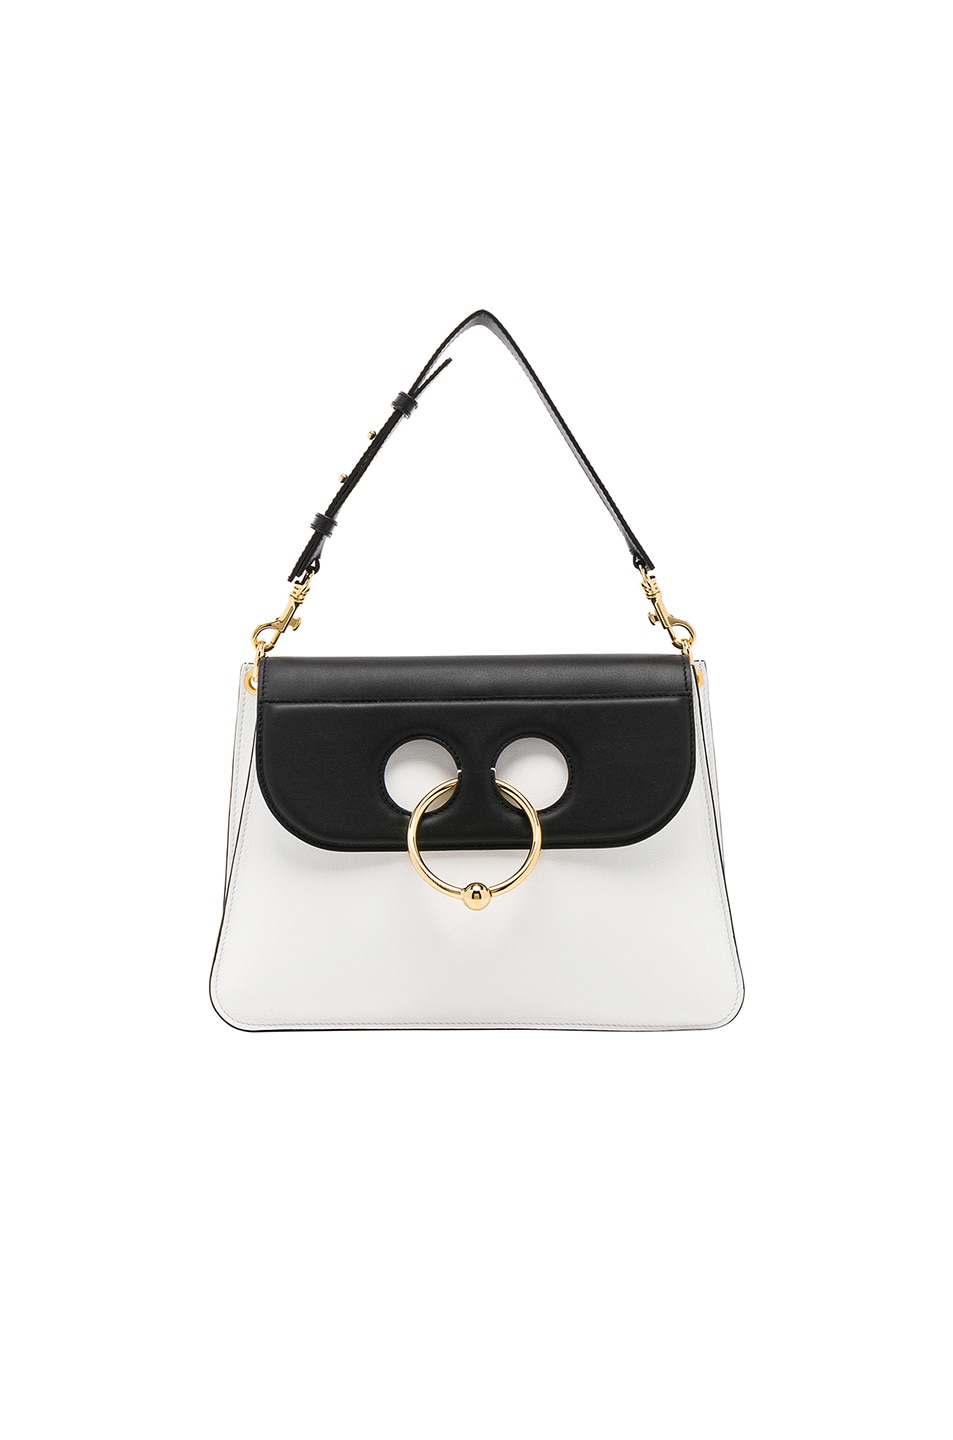 3a021d62d2ce Image 1 of JW Anderson Medium Pierce Bag in White   Black